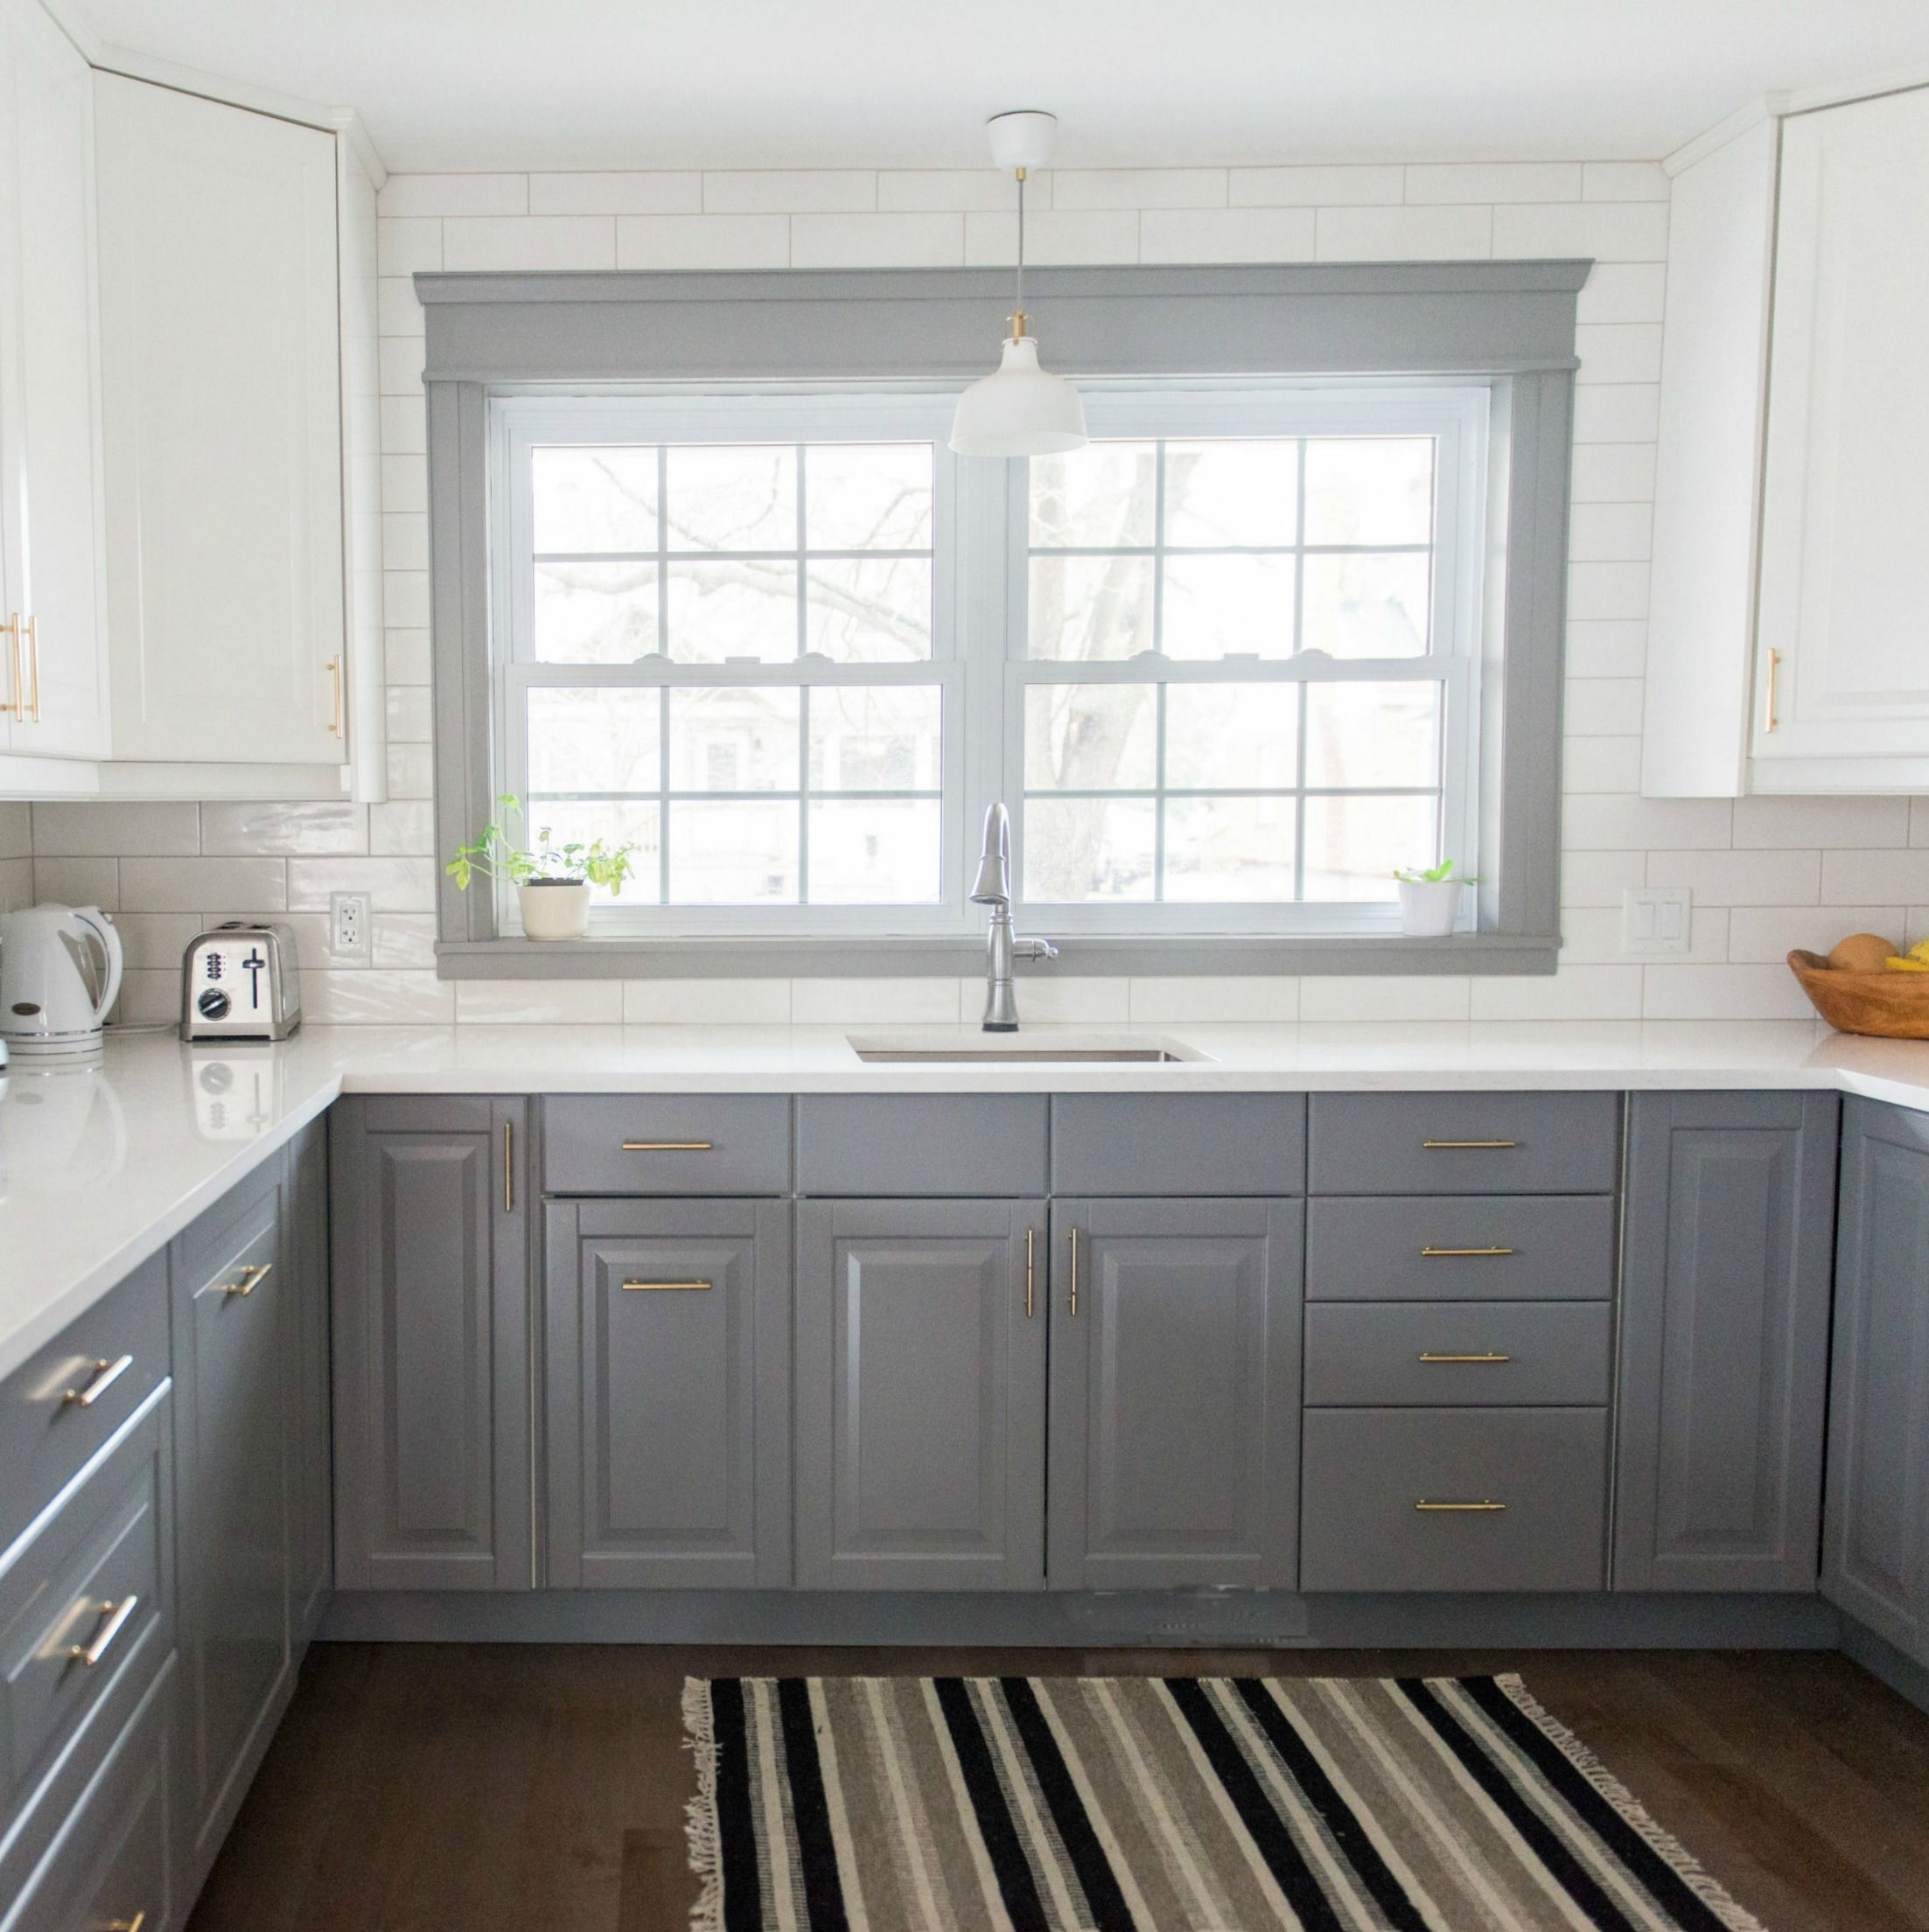 A Gray and White IKEA Kitchen Transformation #0: 977d01e6f89e17d6d6538b69b19b475b